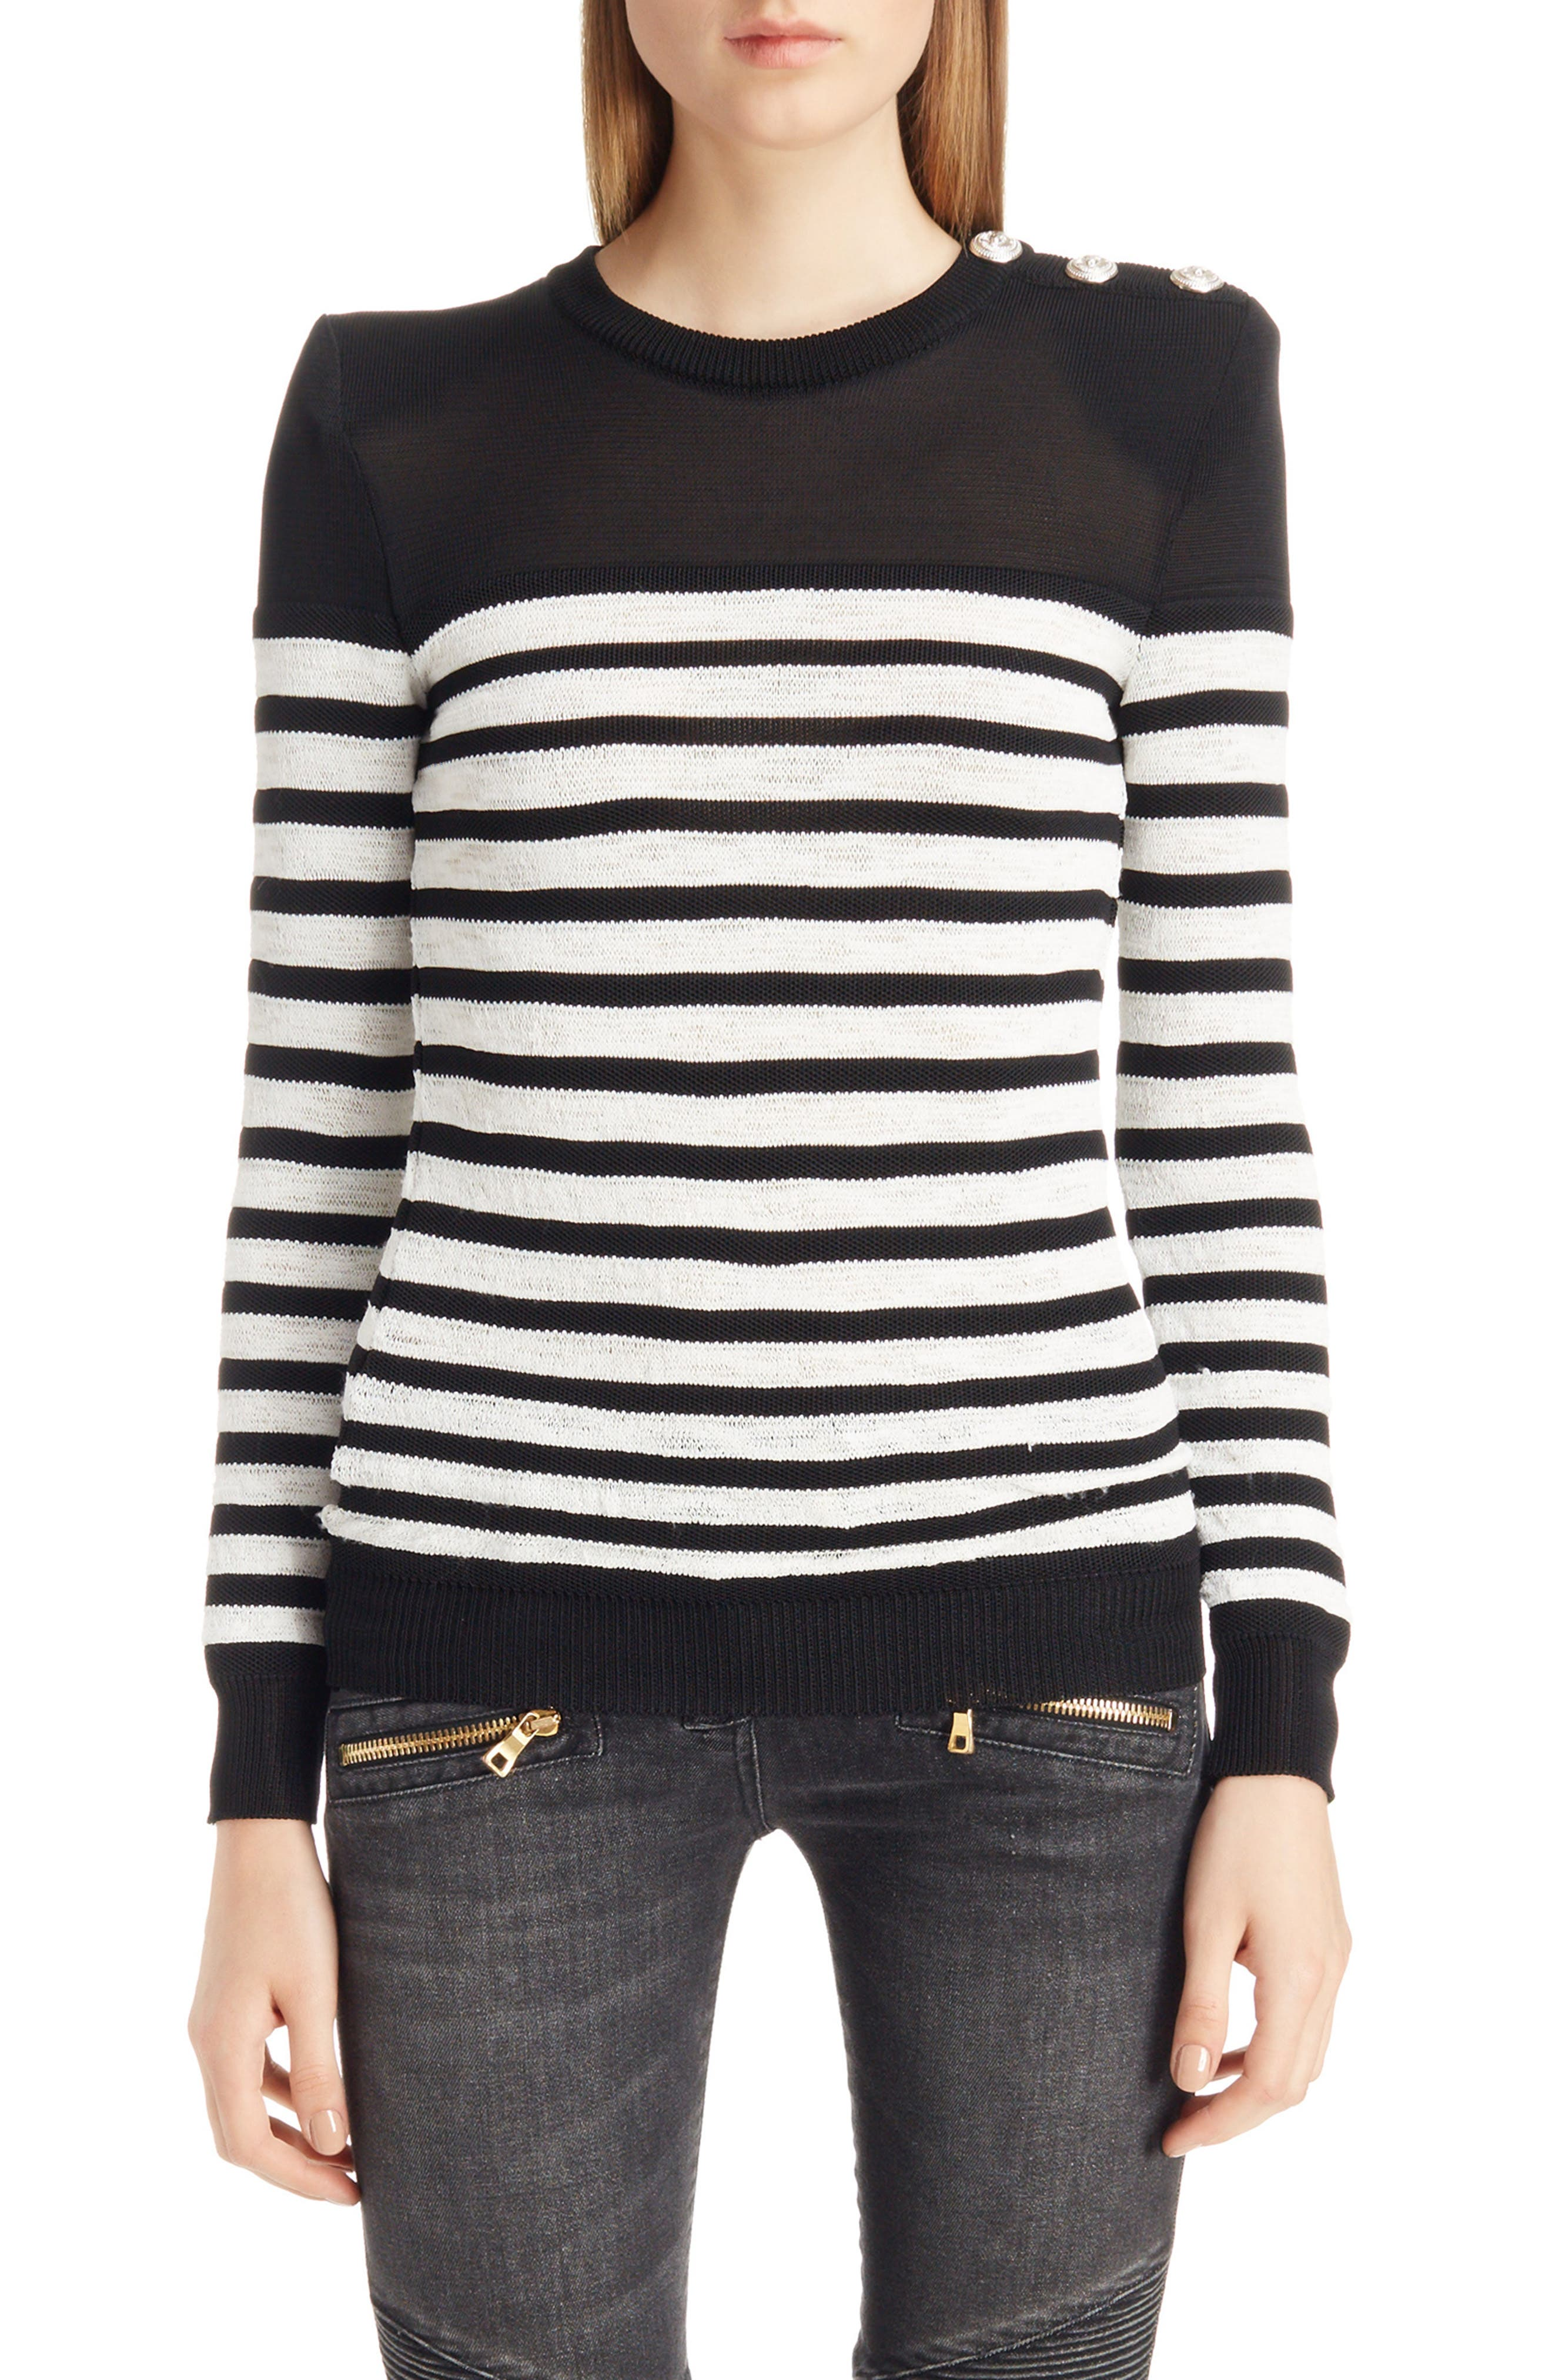 Marine Stripe Knit Sweater,                         Main,                         color, Black And White